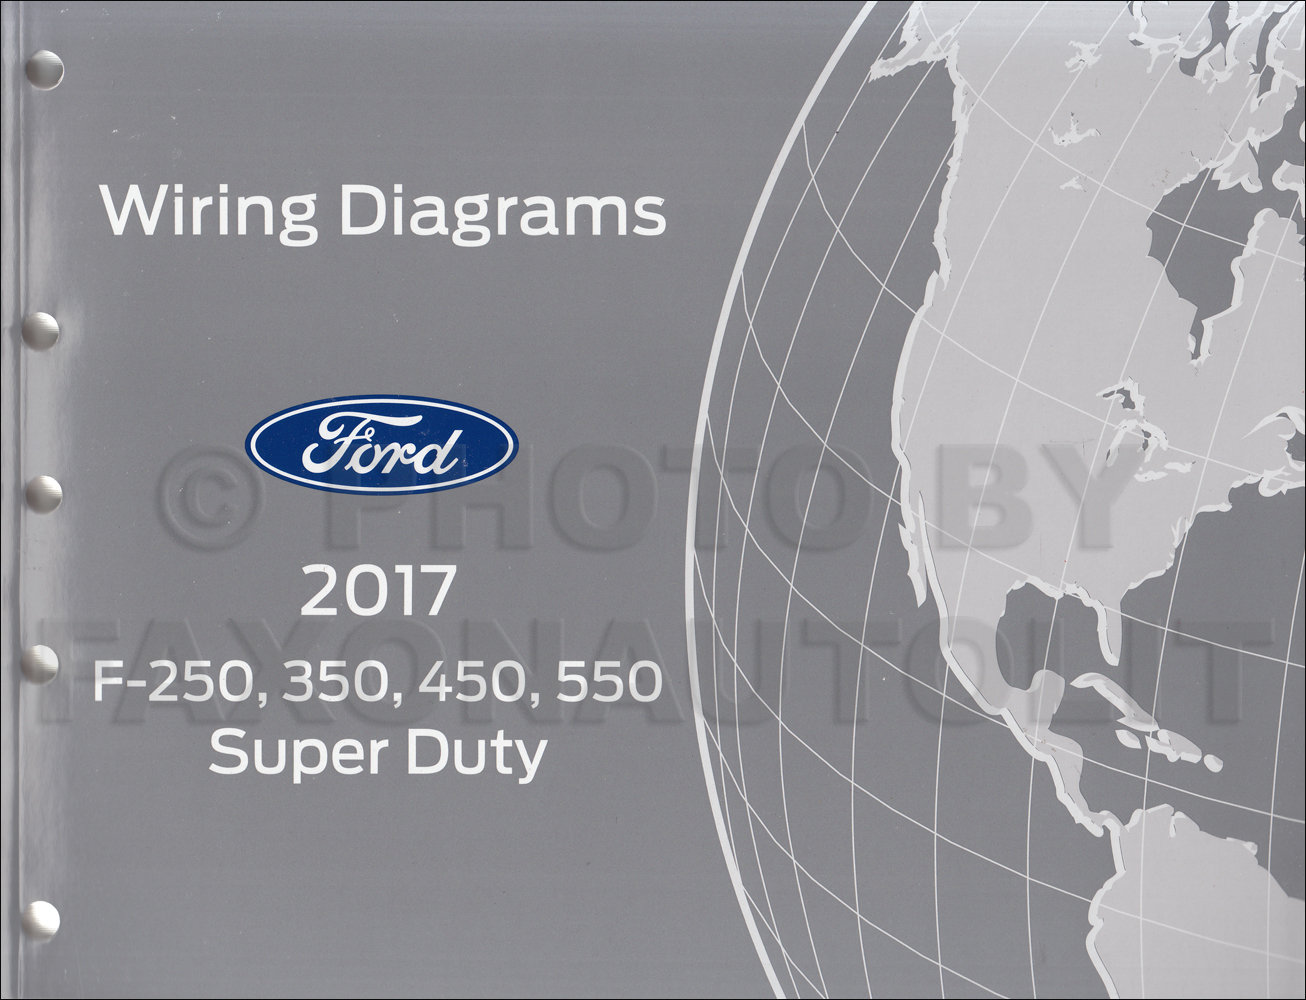 2017FordF250350450550SuperDutyOWD 2017 ford f250 f550 super dutytruck wiring diagram manual original 2017 ford f550 wiring diagram at crackthecode.co